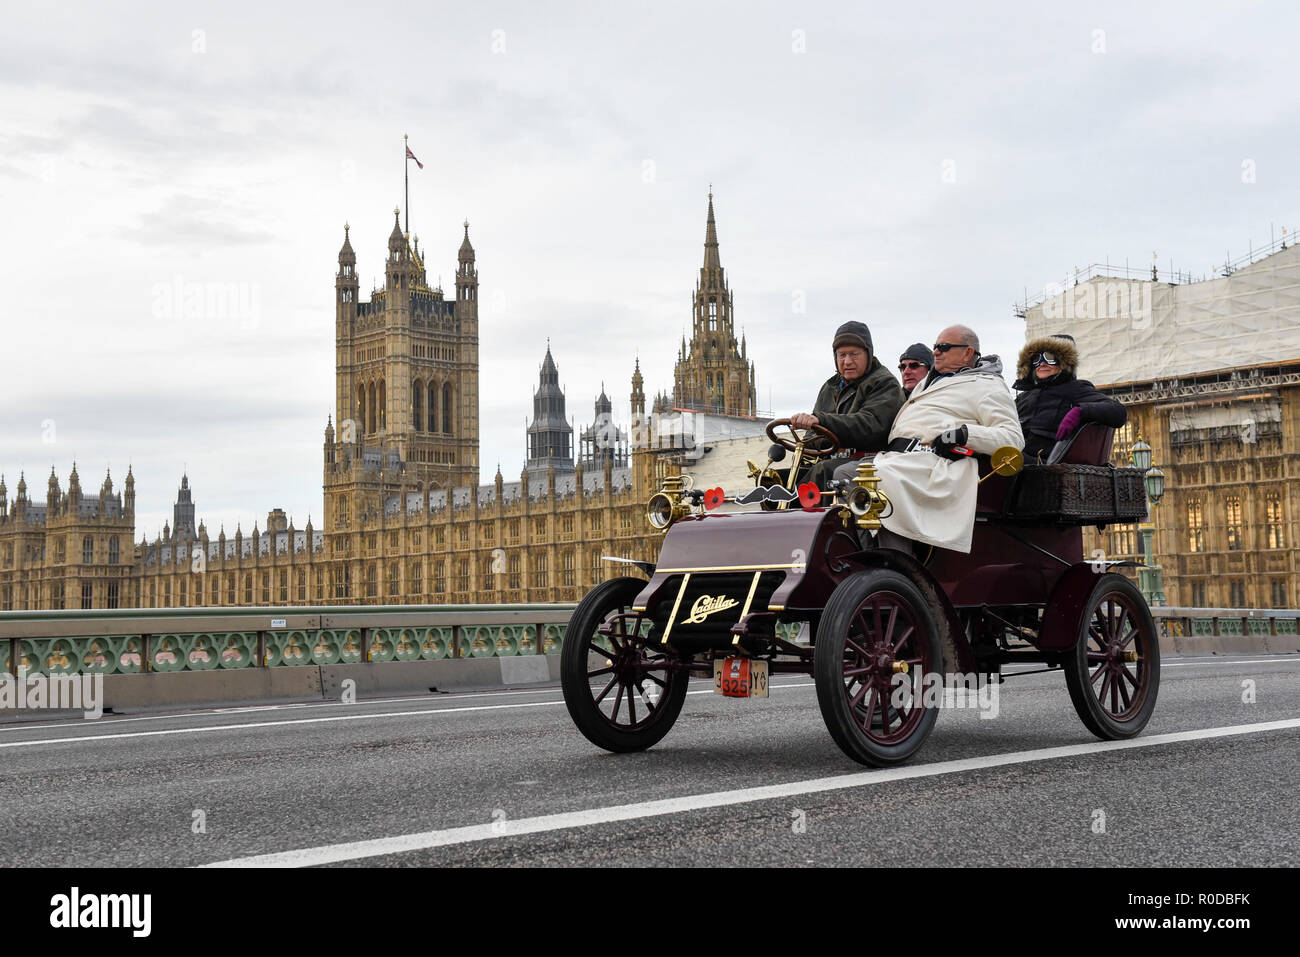 London, UK.  4 November 2018.  Participants cross Westminster Bridge en route to the coast in the 122nd Bonhams London to Brighton Veteran Car Run.  The 60 mile journey is undertaken by over 600 pre-1905 manufactured vehicles, some of which suffer frequent breakdowns.  The Run commemorates the Emancipation Run of 14 November 1896, which celebrated the Locomotives on the Highway Act, when the speed limit for 'light locomotives' was raised from 4 mph to 14 mph, abolishing the need for vehicles to be preceded by a man on foot.   Credit: Stephen Chung / Alamy Live News Stock Photo